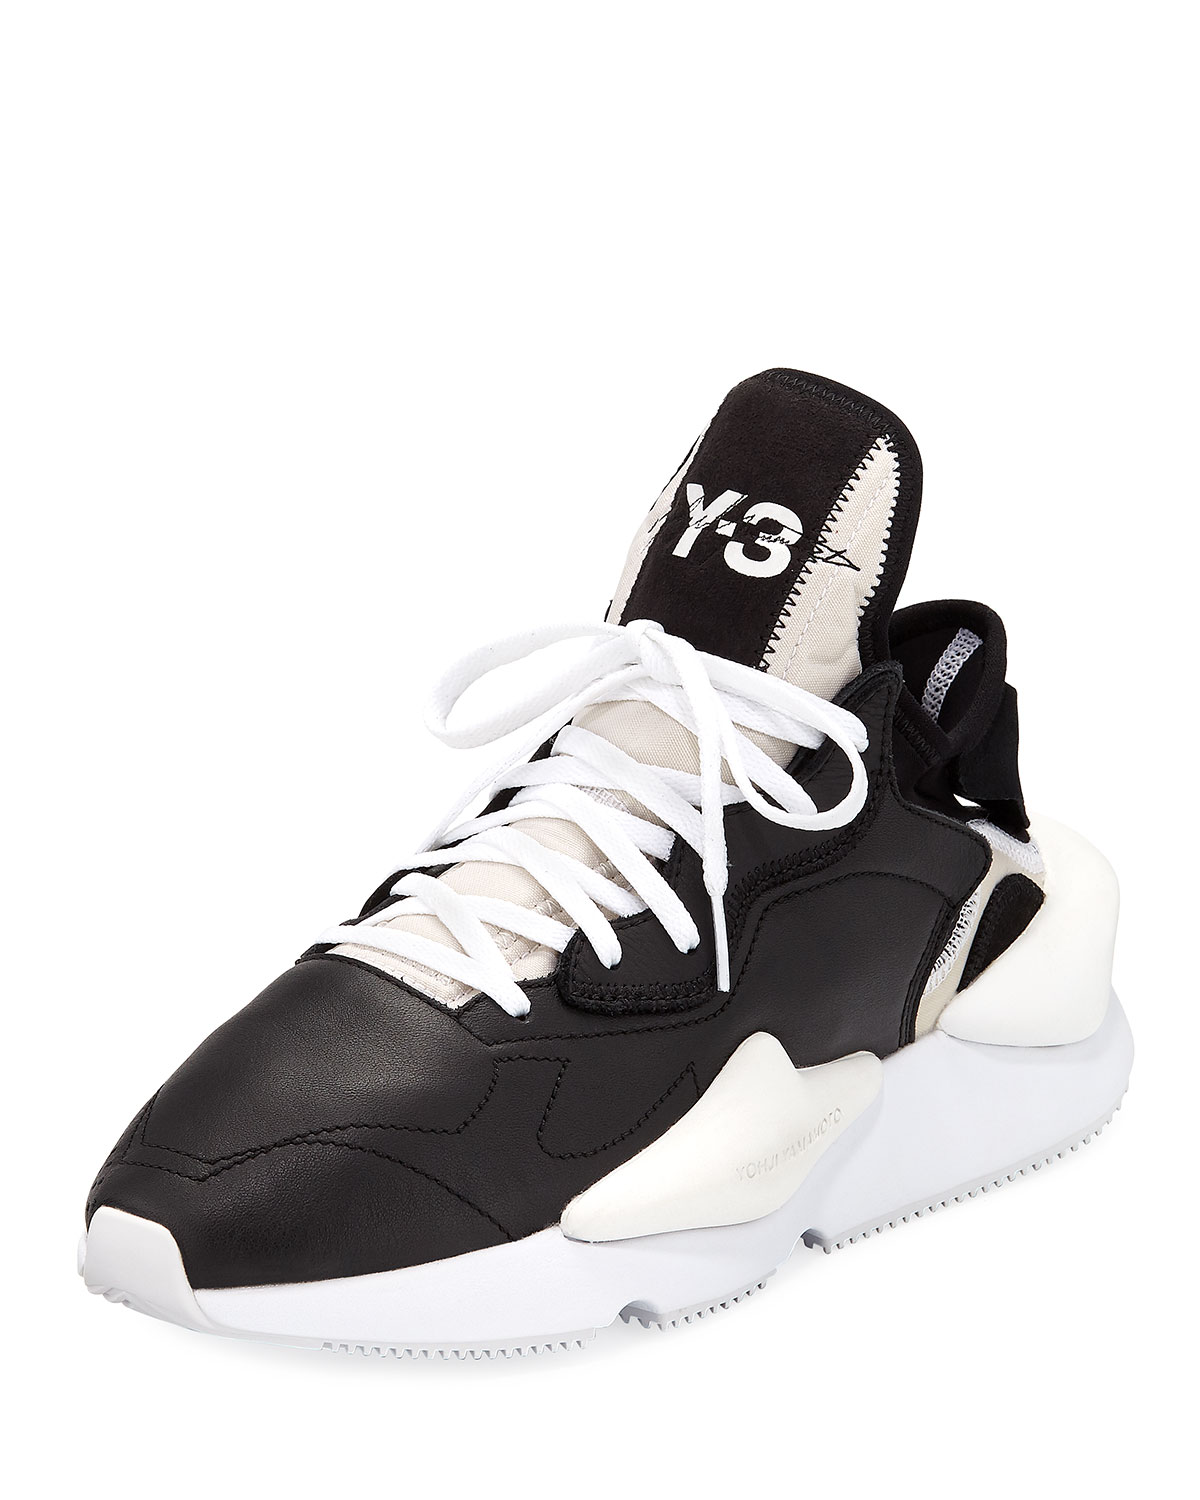 bd033e83453d Y-3 Men s Kaiwa Leather Running Sneakers